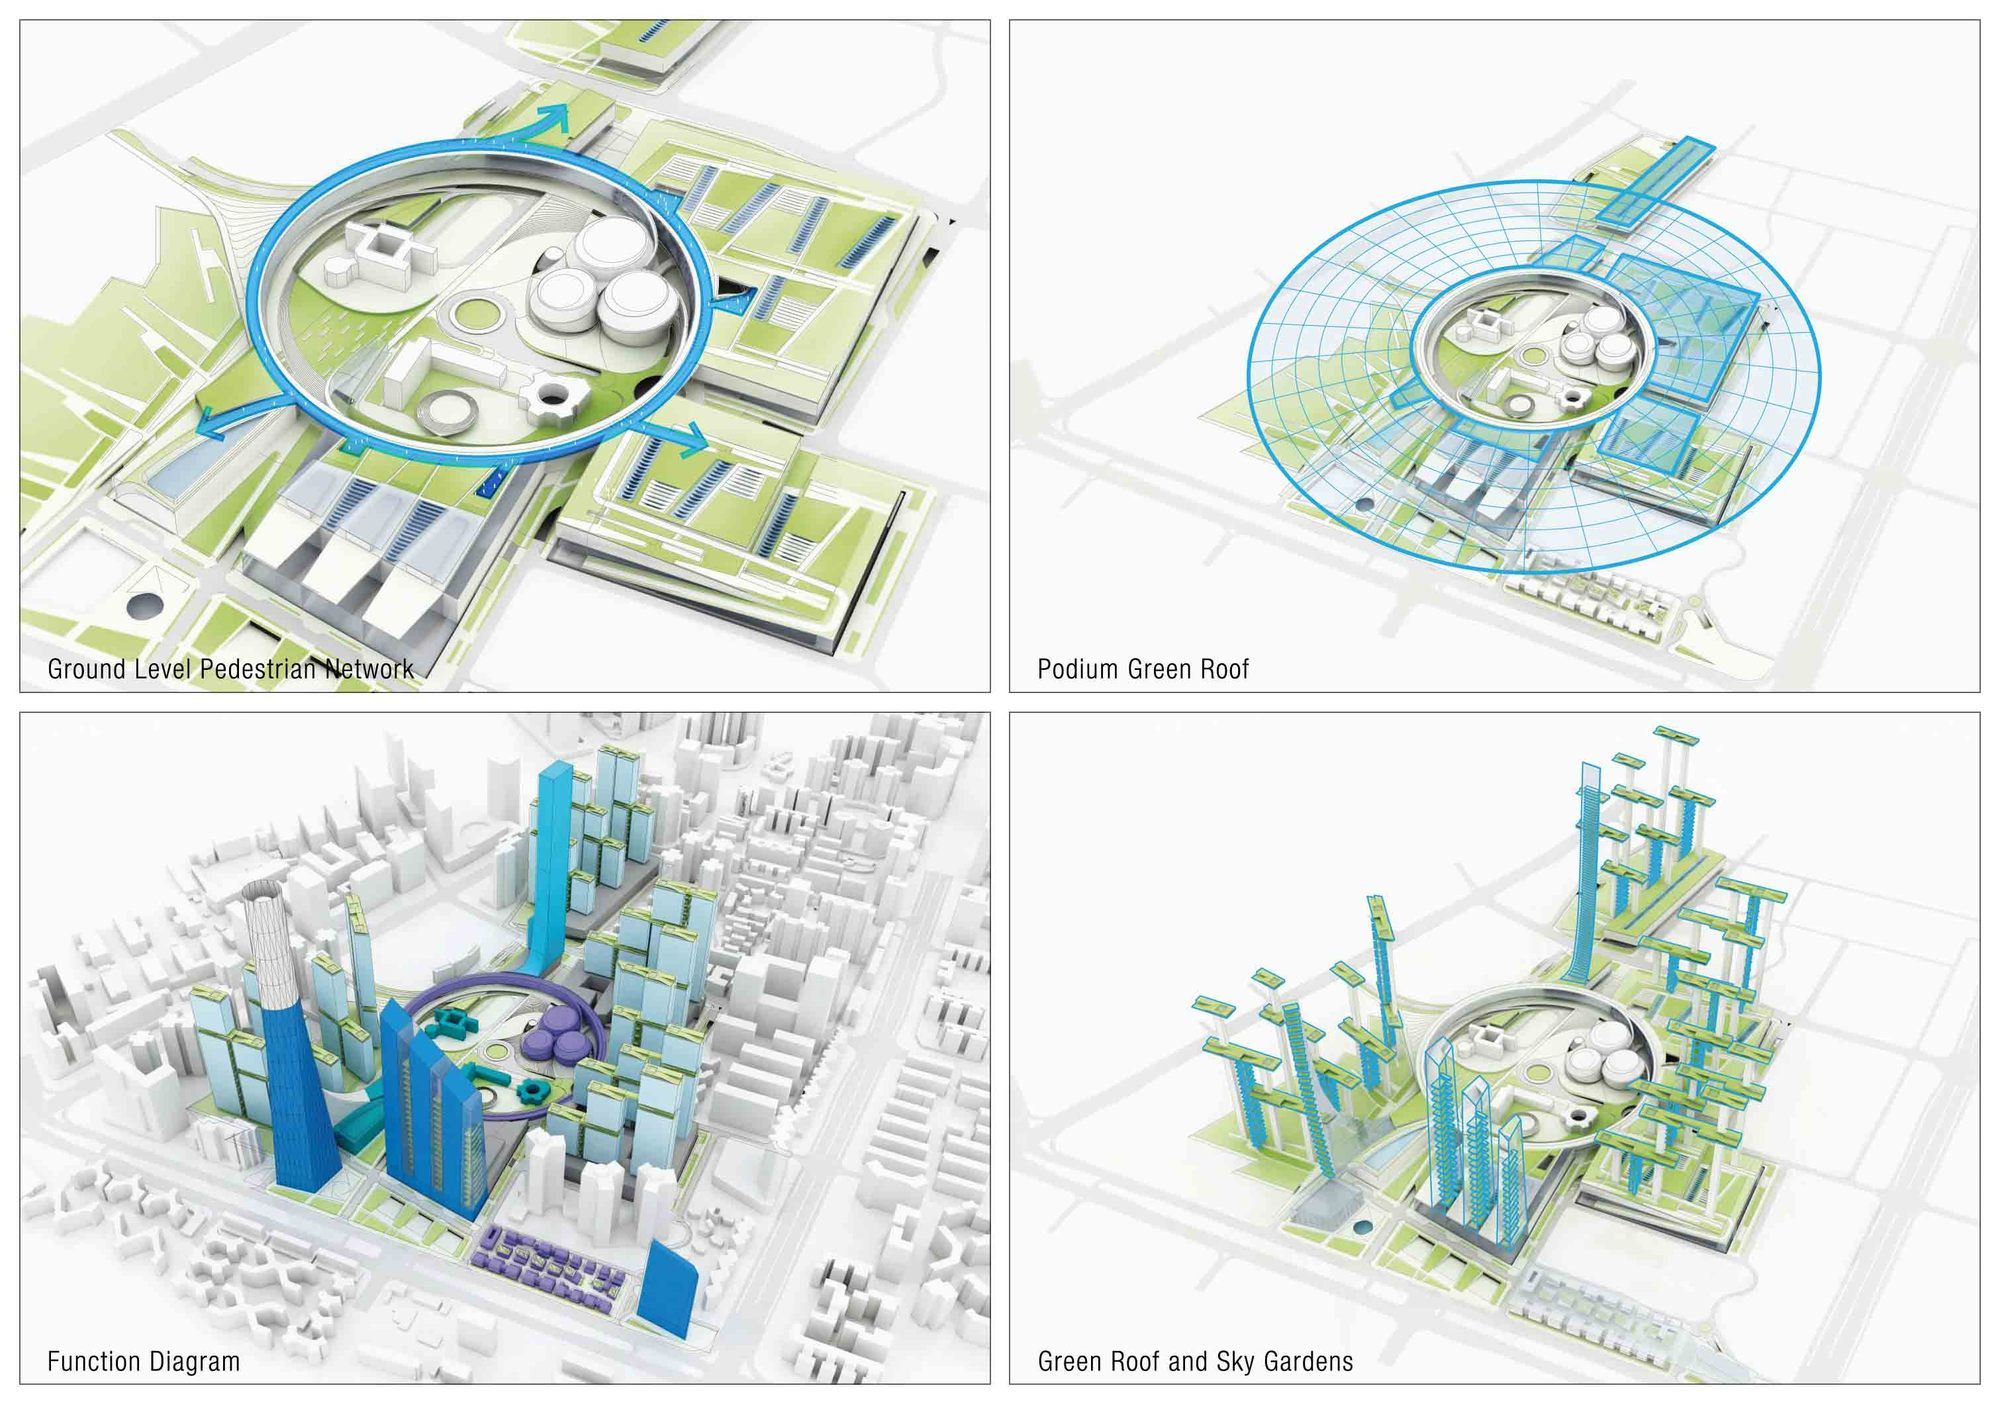 images urban planner in diagram compressor pump gallery of hanking nanyou newtown planning design